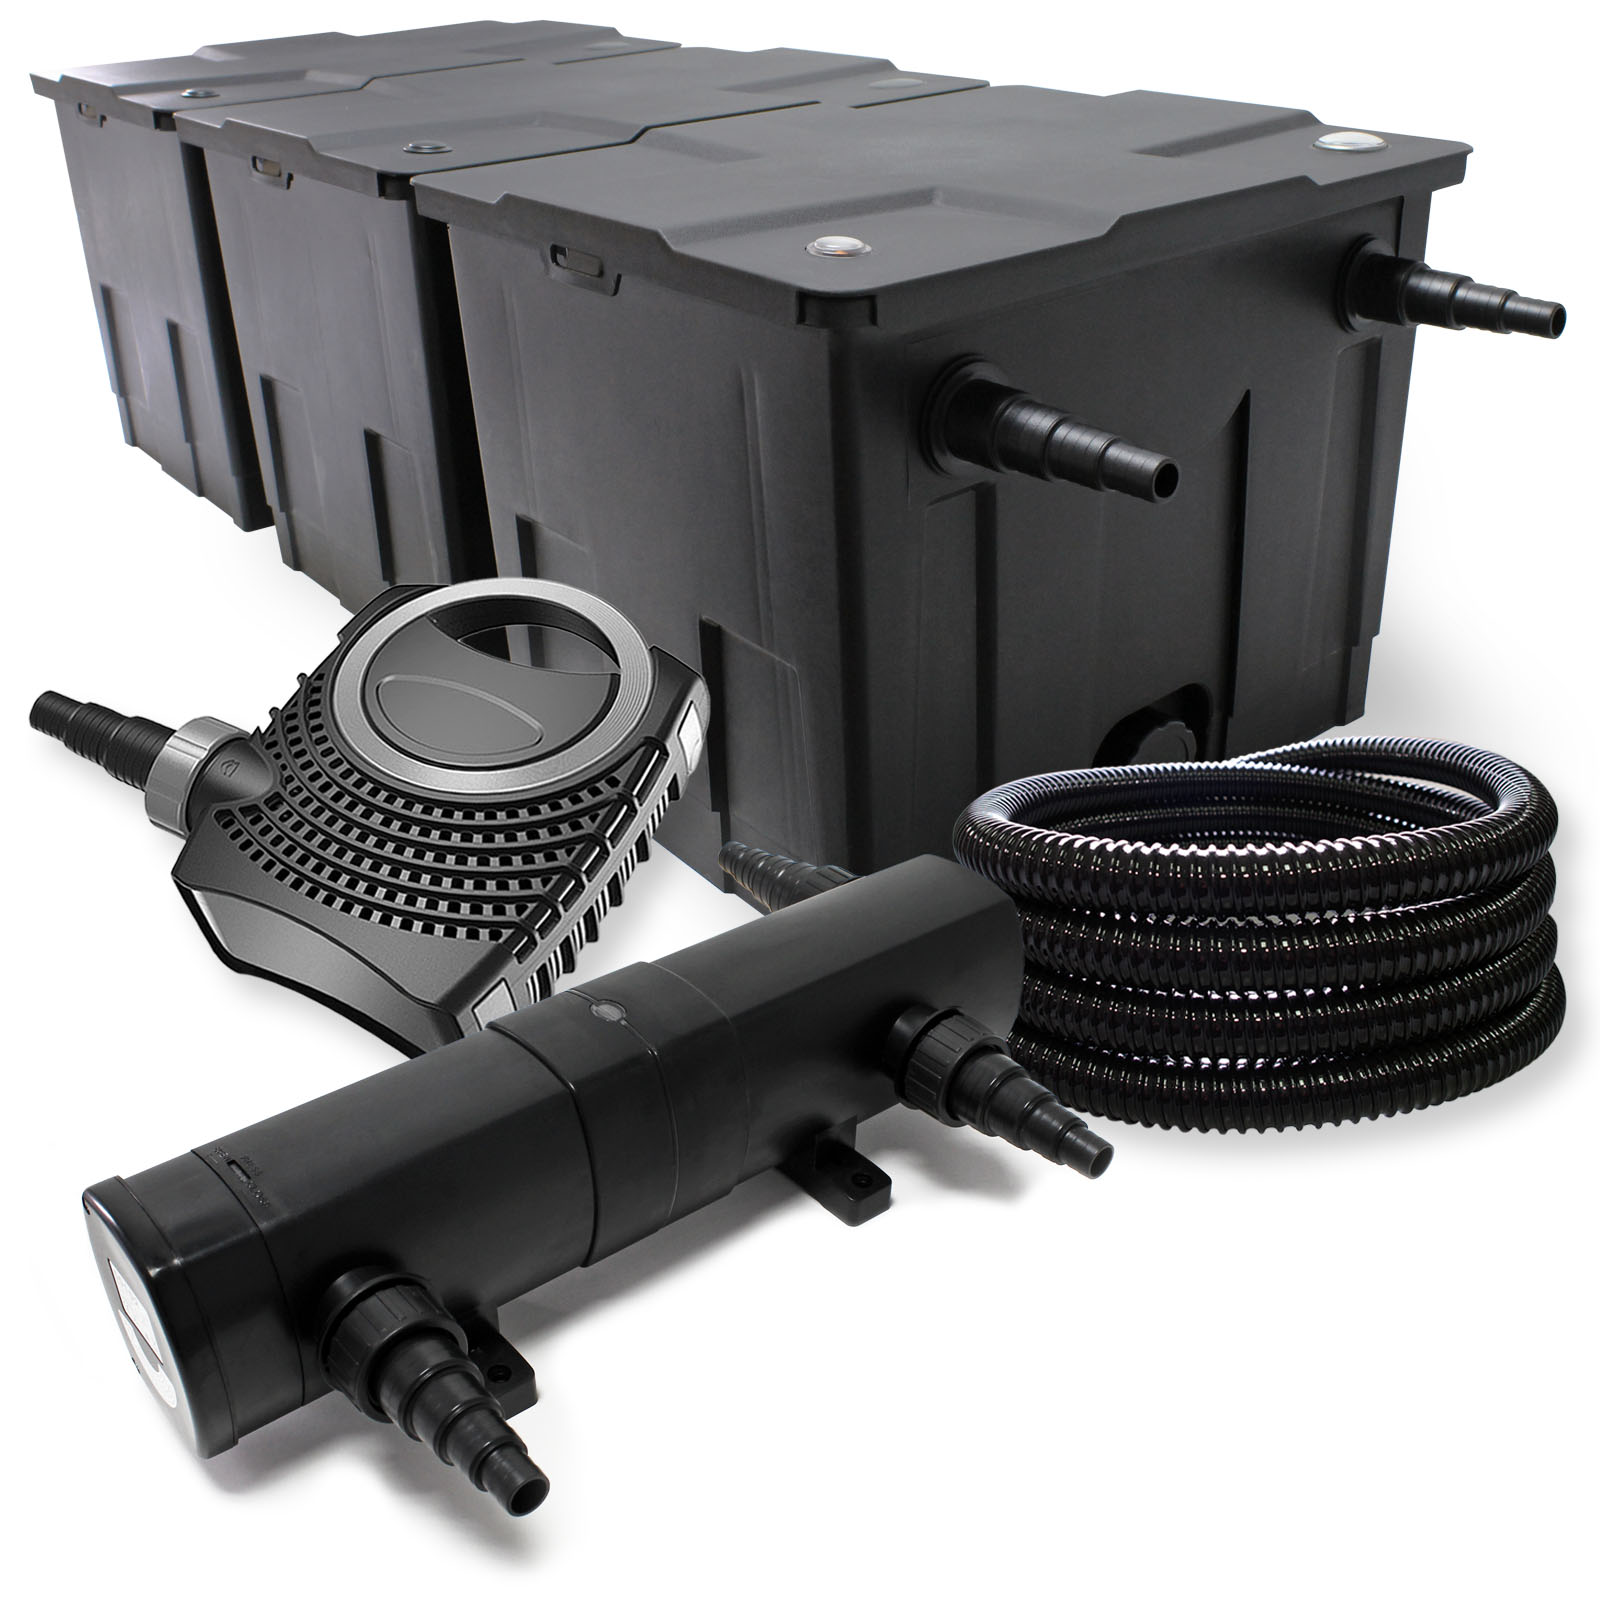 Ttfilter set bio pond filter 90000l 36w uvc clarifier pump for Set up pond filter system